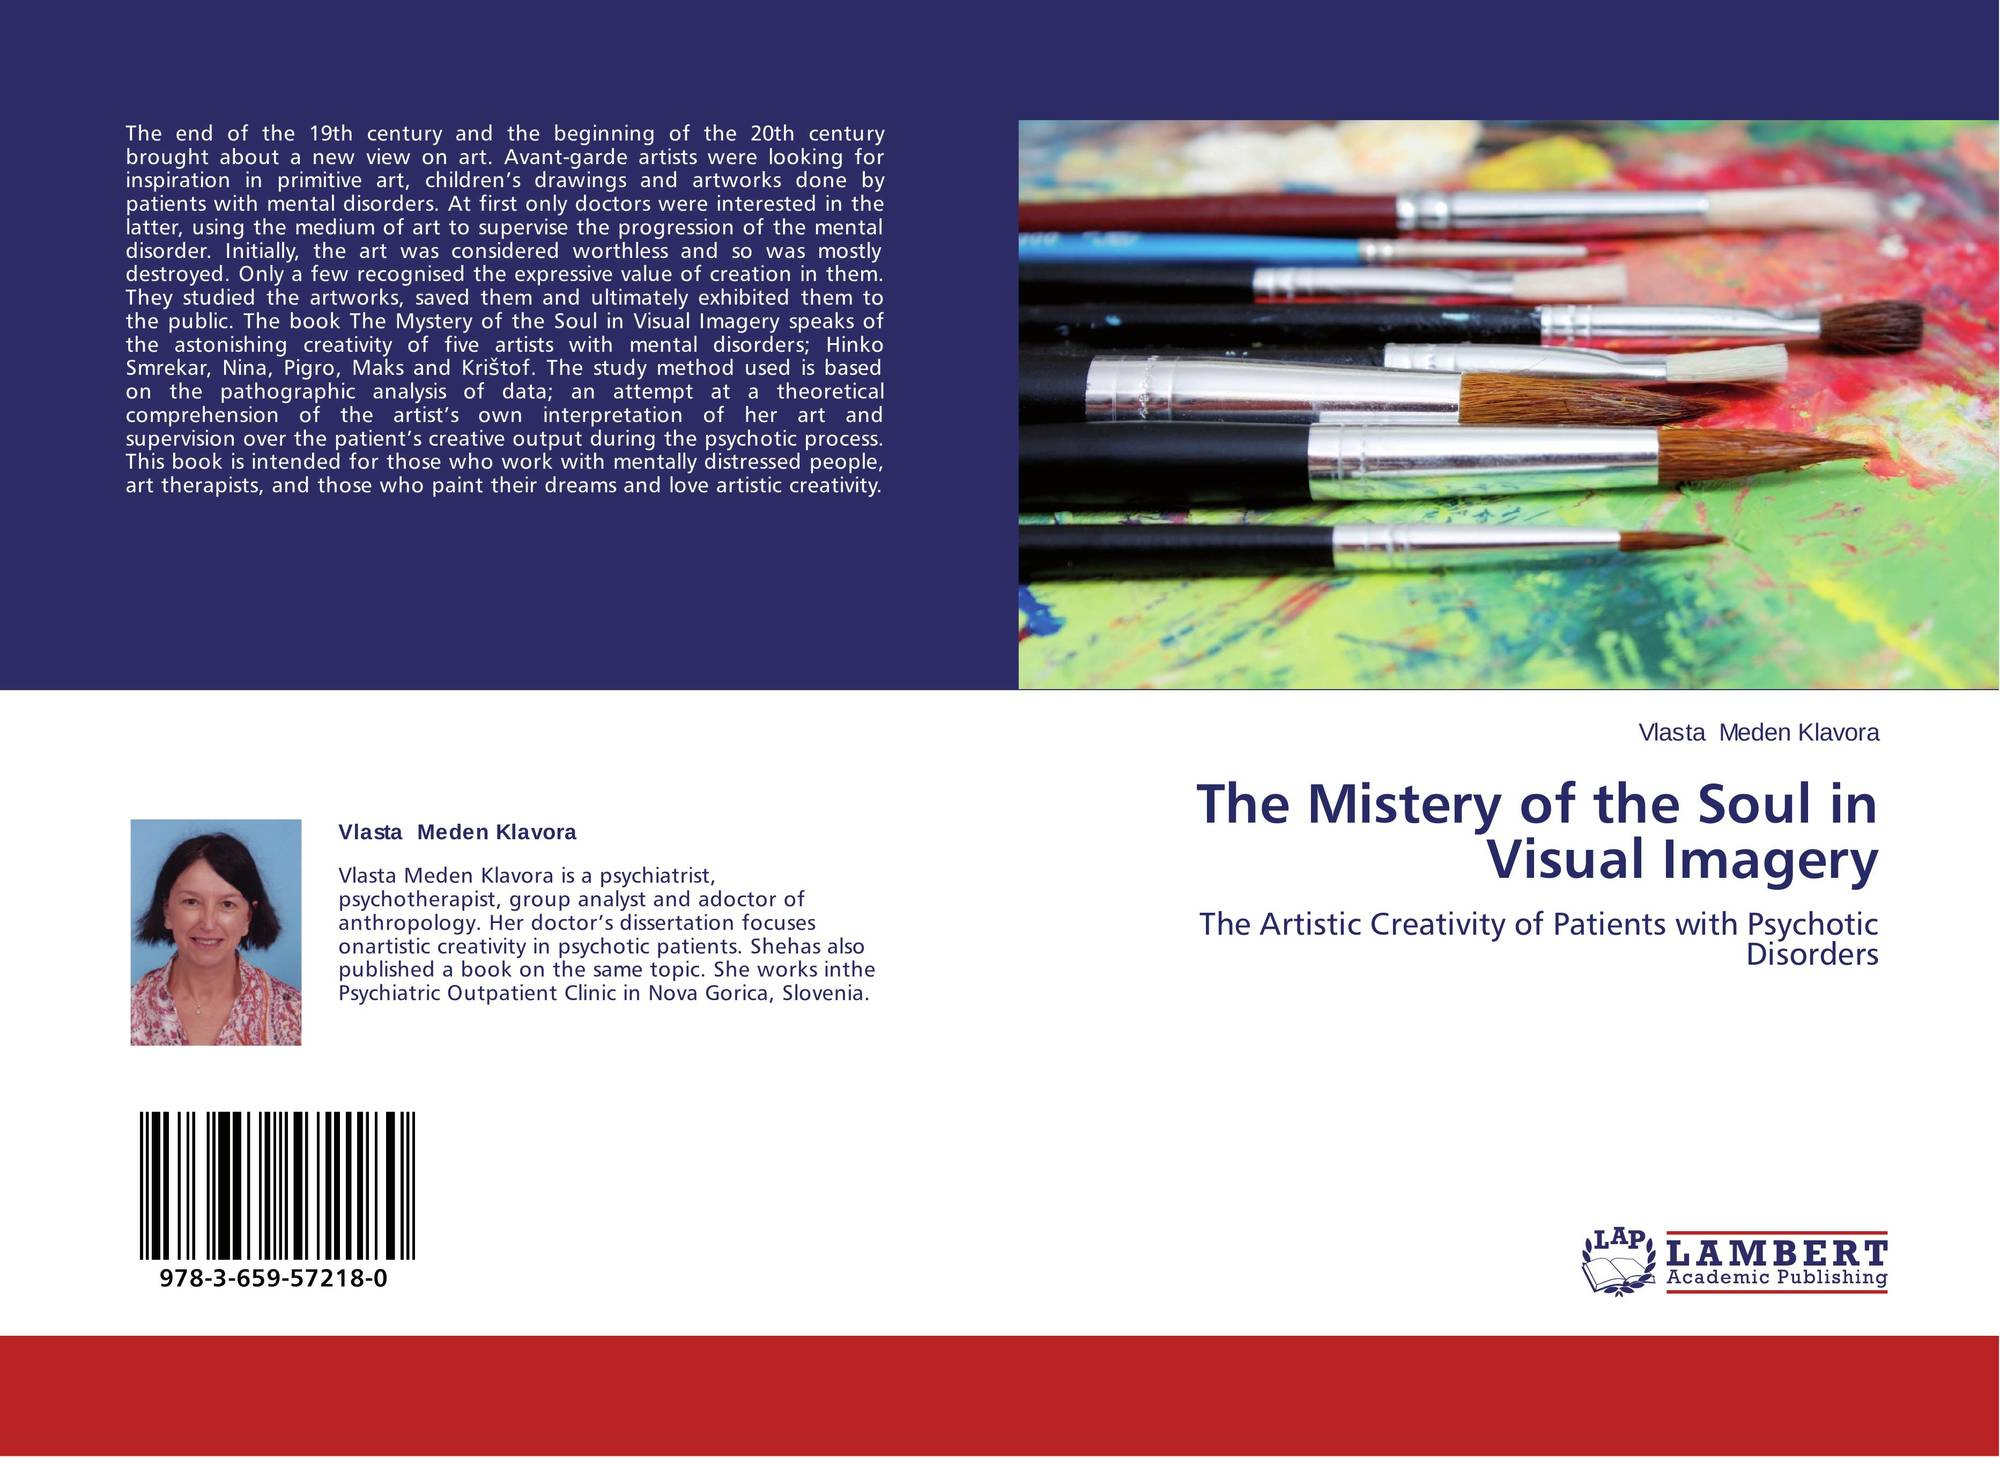 The Mistery of the Soul in Visual Imagery, 978-3-659-57218-0